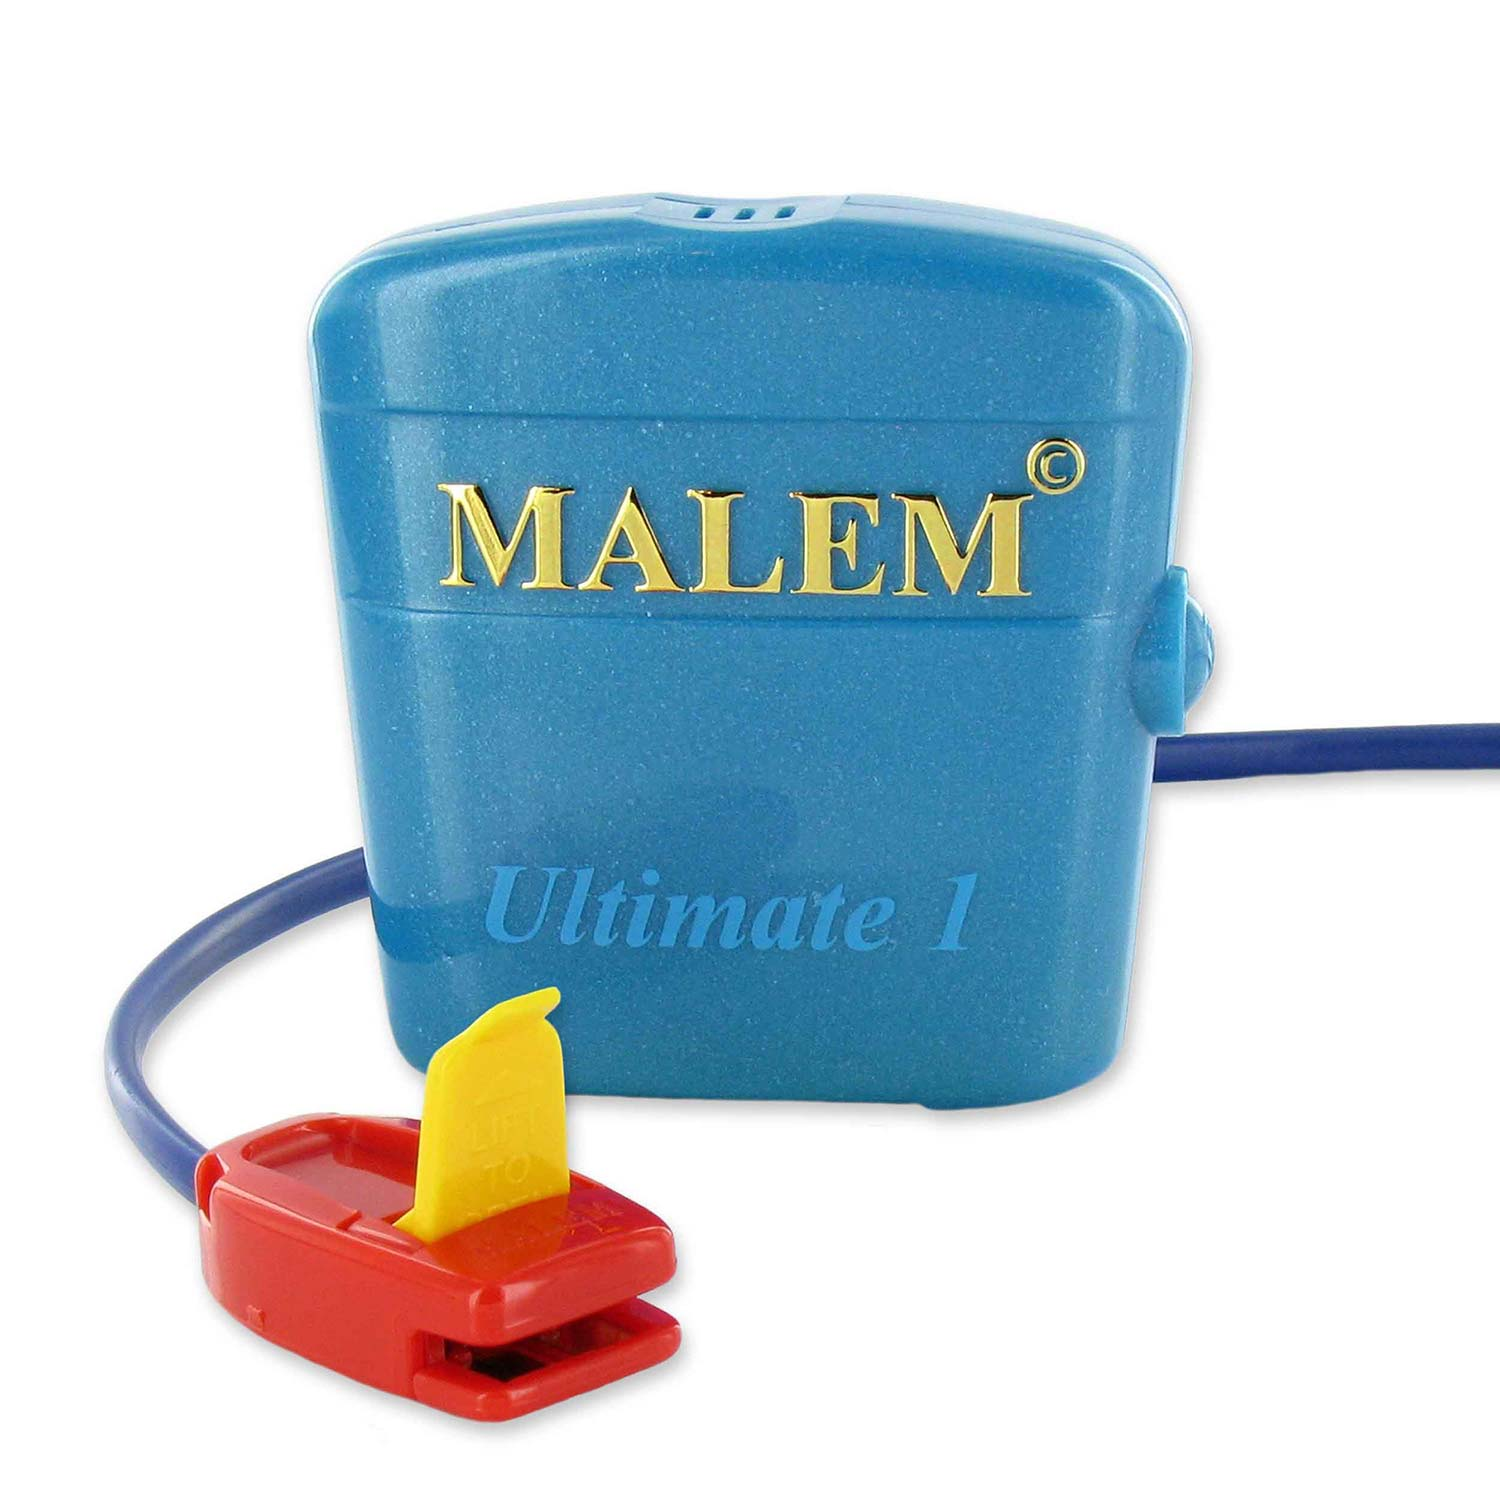 Alarms-Malem Ultimate Bedwetting Alarm